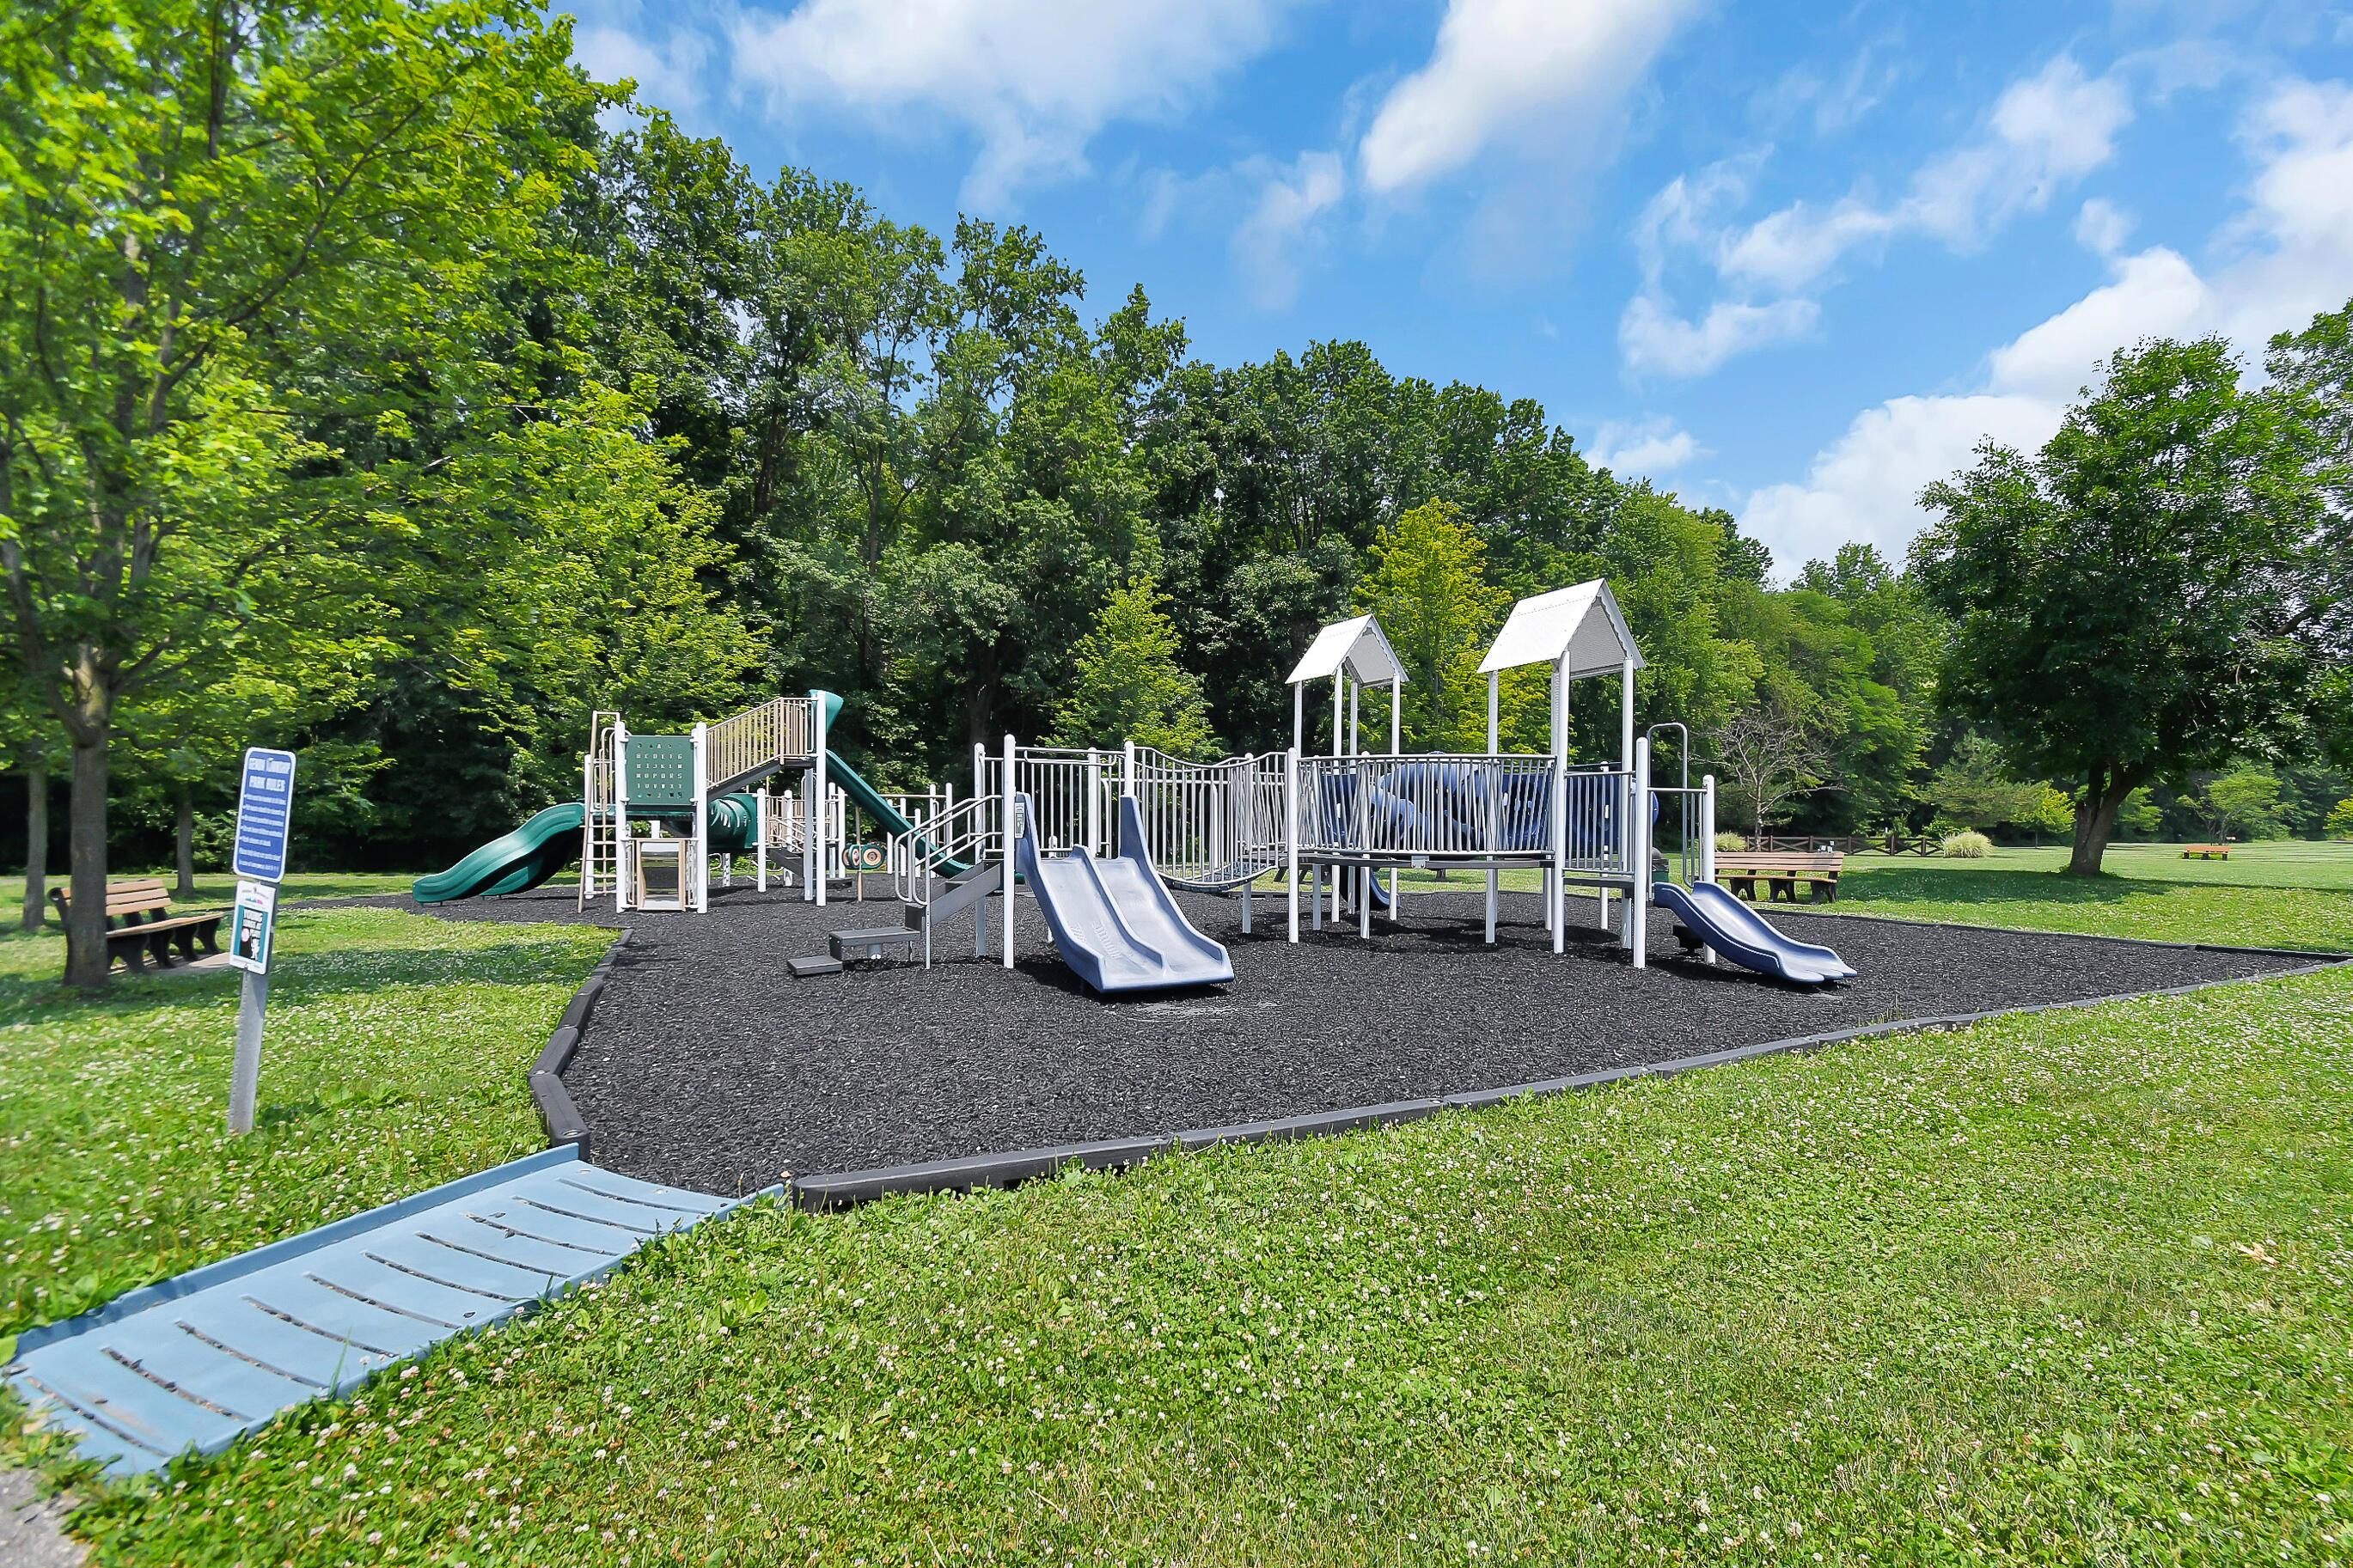 Slides,Swings and Climbing Towers